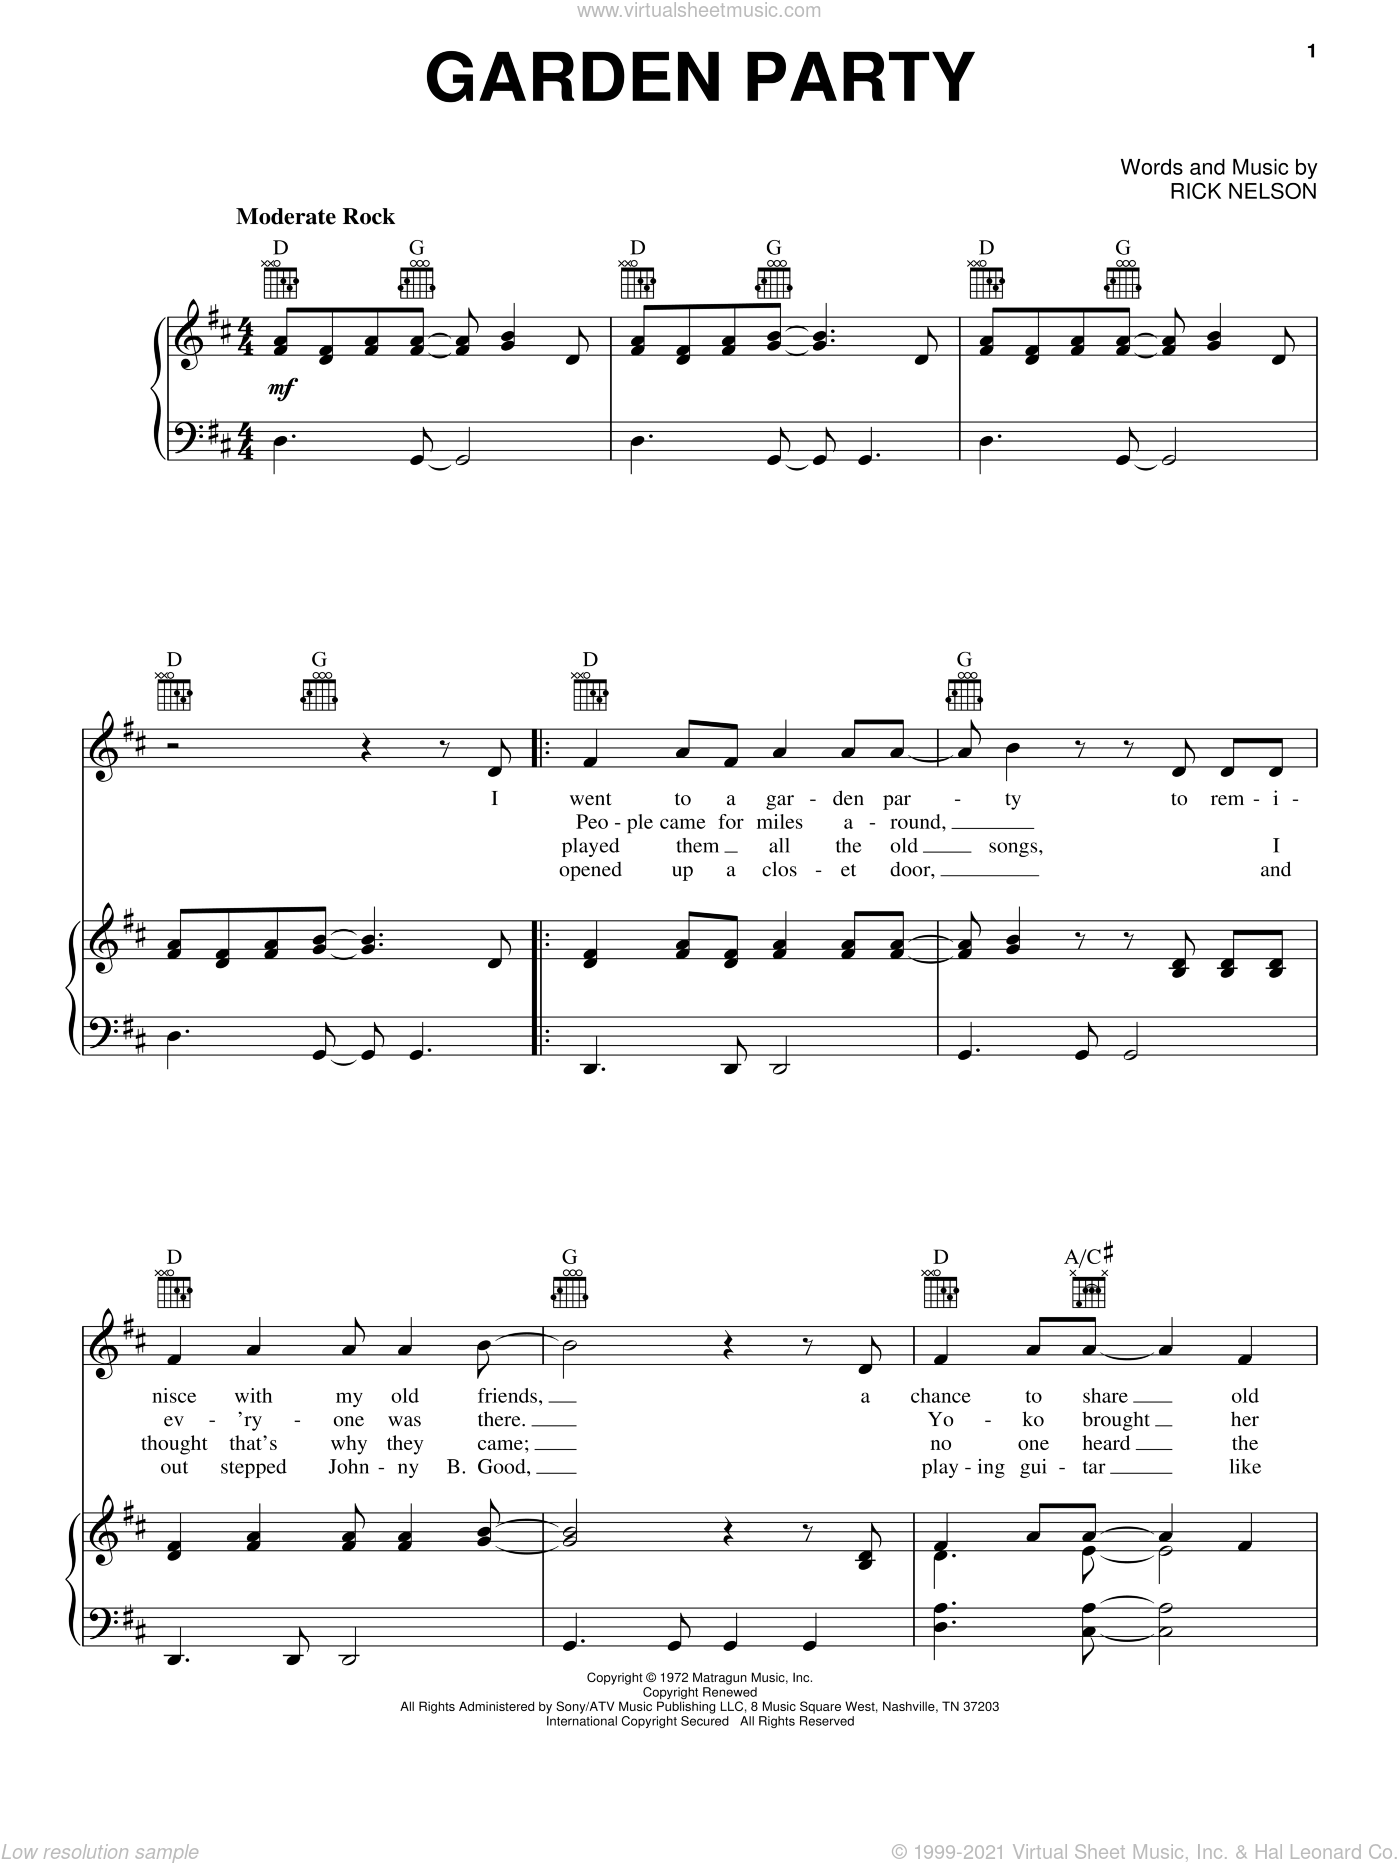 Garden Party sheet music for voice, piano or guitar by Ricky Nelson, intermediate